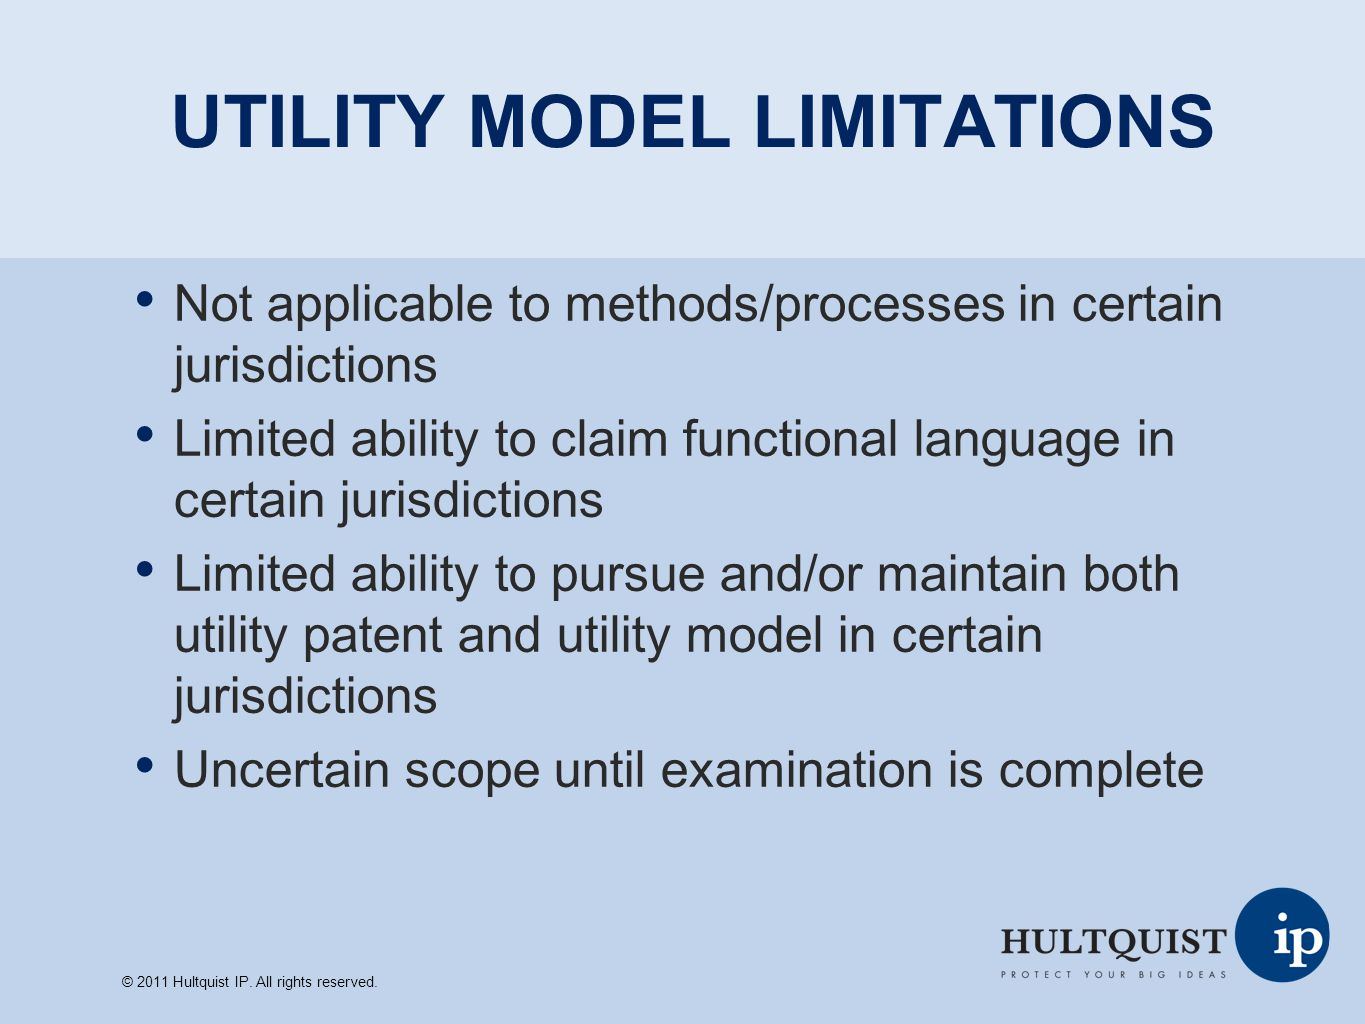 UTILITY MODEL LIMITATIONS Not applicable to methods/processes in certain jurisdictions Limited ability to claim functional language in certain jurisdi